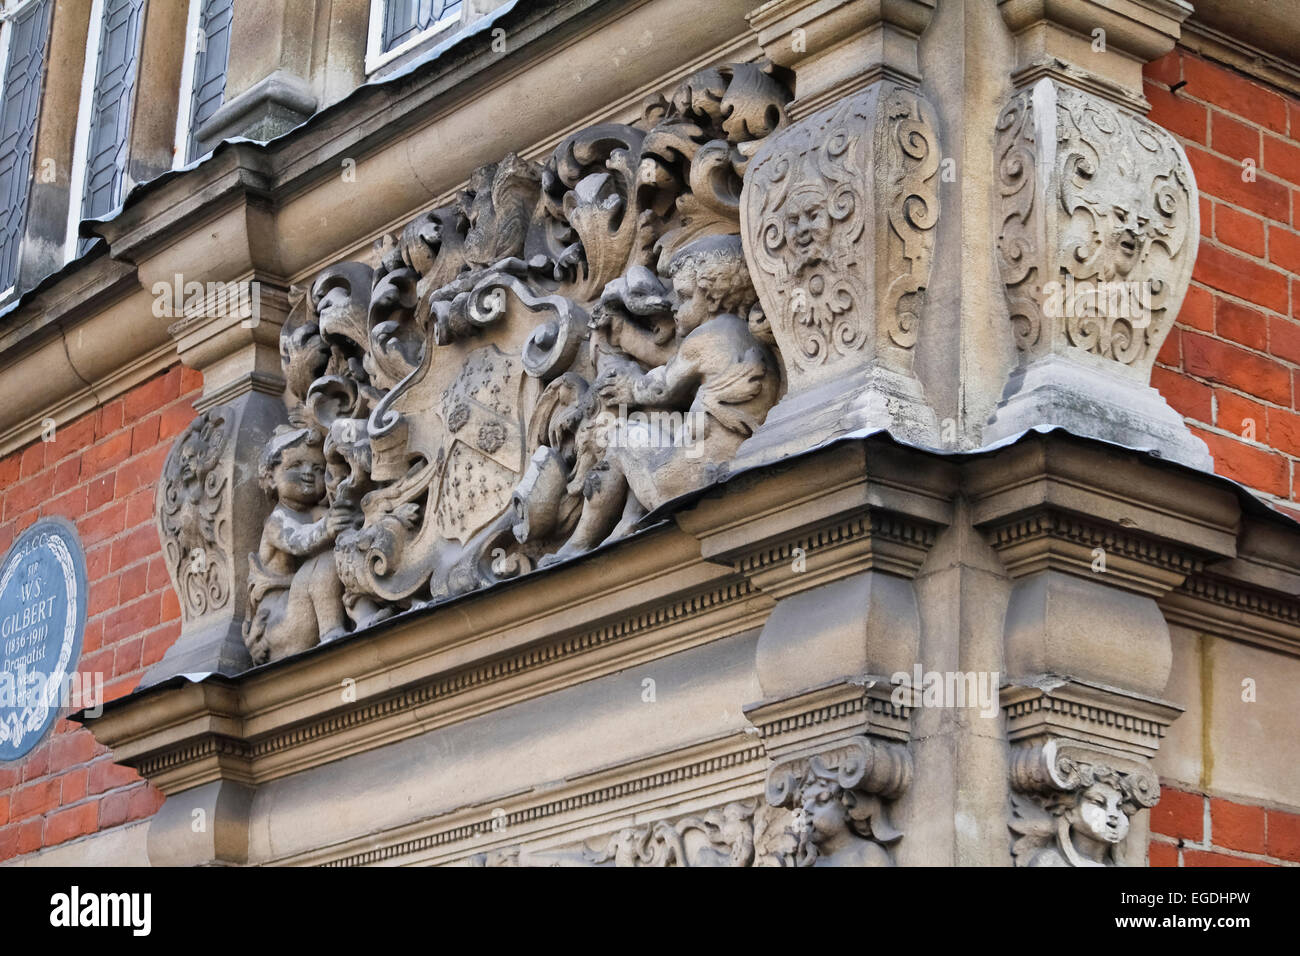 Sculpture on the corner of a London building - Stock Image